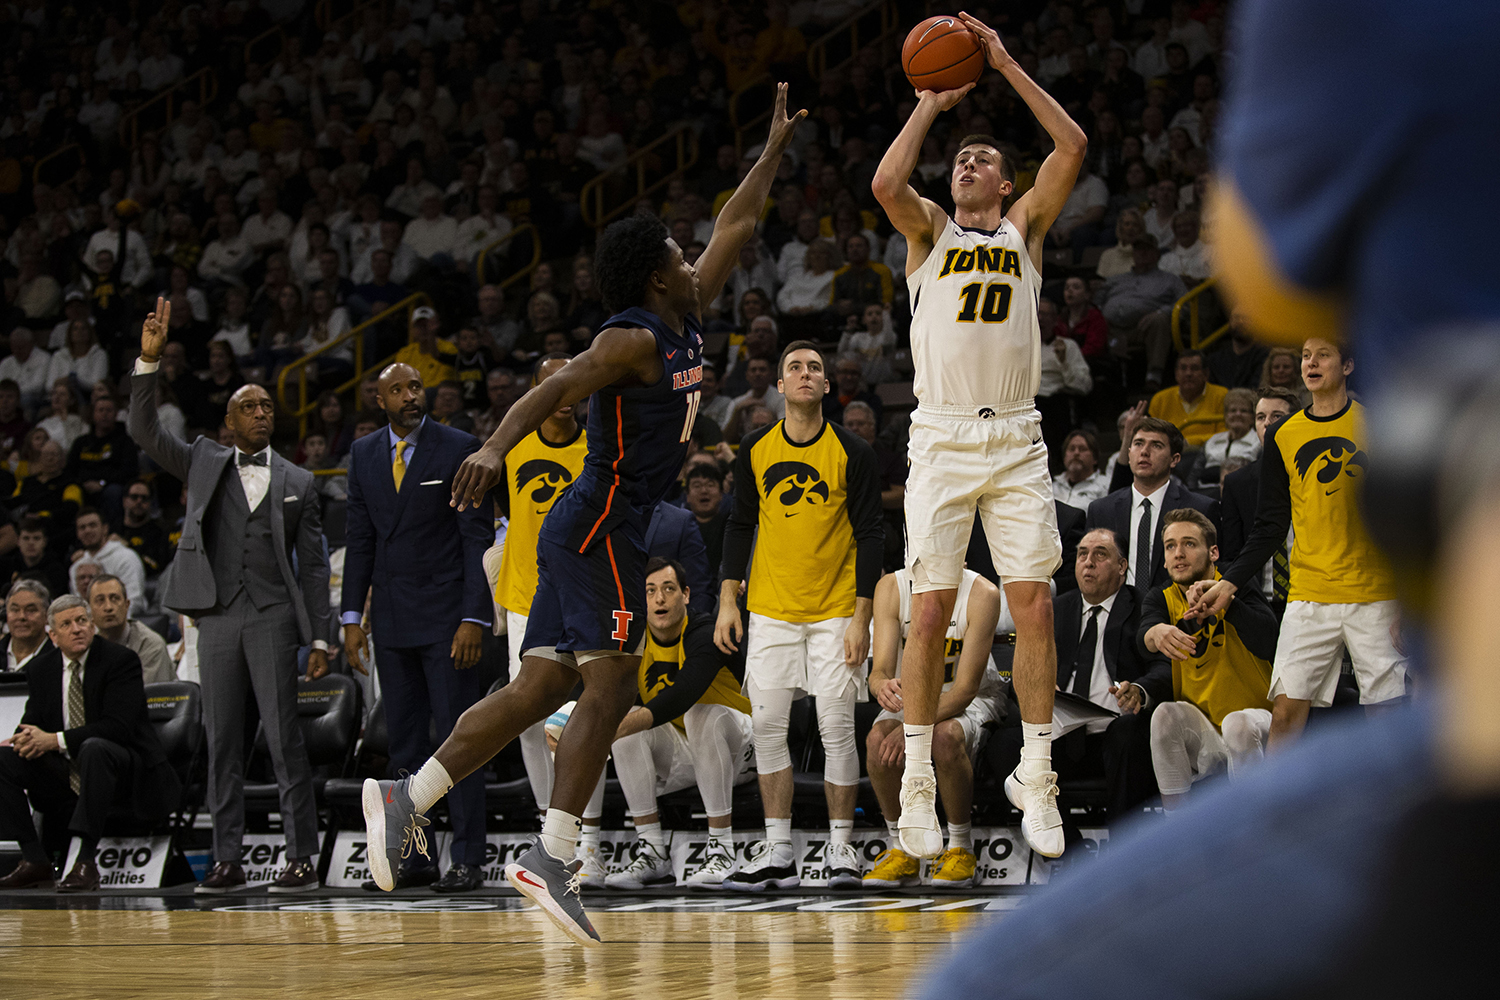 Iowa+guard+Joe+Wieskamp+shoots+a+3-point+shot+during+the+Iowa%2FIllinois+men%27s+basketball+game+at+Carver-Hawkeye+Arena+on+Sunday%2C+January+20%2C+2019.+The+Hawkeyes+defeated+the+Fighting+Illini%2C+95-71.+